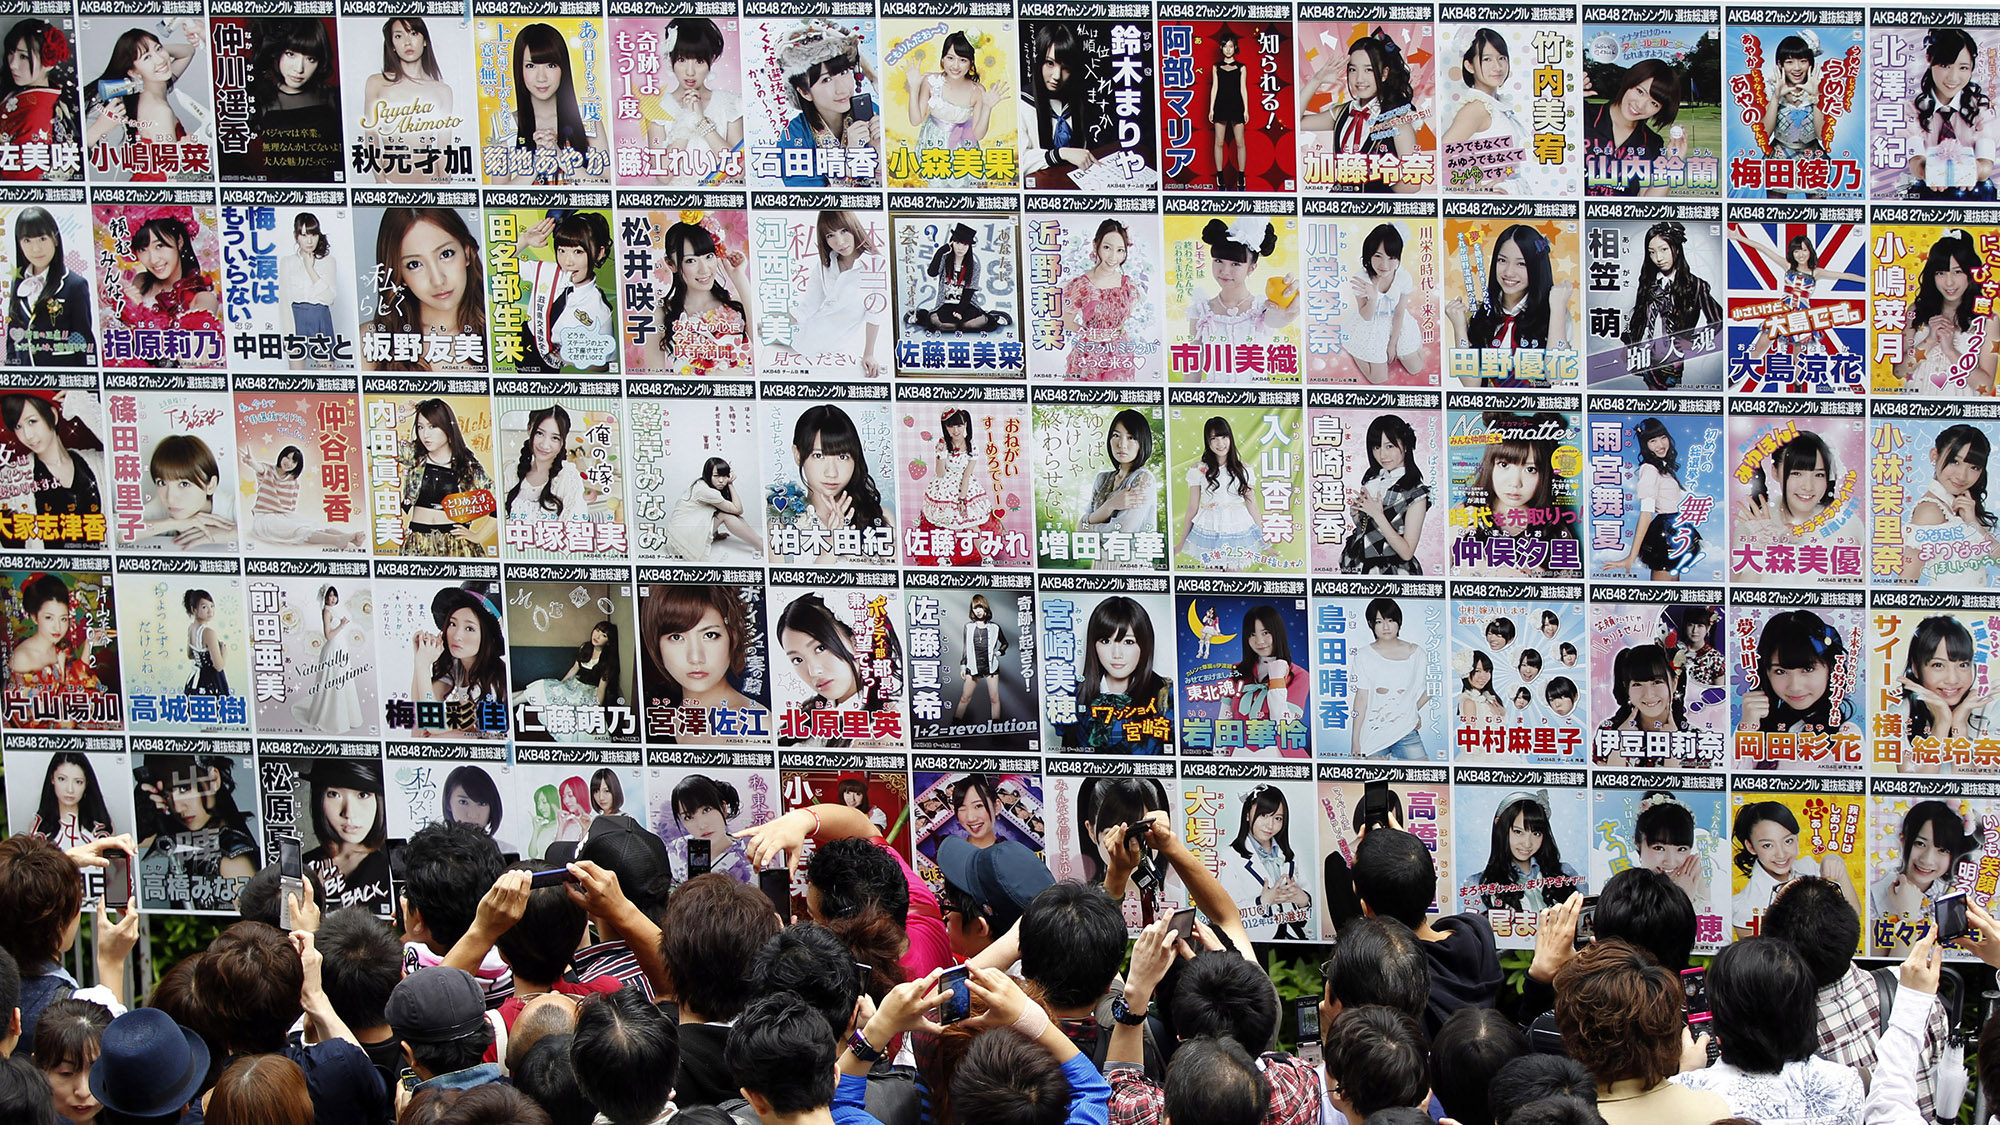 """Fans gather in front of """"election"""" posters, showing the contestants for the new leader of Japan's girl pop group AKB48, ahead of an annual popularity """"election"""" event at Tokyo's Budokan gymnasium June 6, 2012. In a three-hour show broadcast live from Tokyo's hallowed Budokan, 23-year-old Yuko Oshima was selected as leader and face of the group, which has been recognized by Guinness as the world's biggest girl pop group. AKB48 was founded in 2005, and is known for its perky routines and high """"kawaii,"""" or cuteness, quotient. Every year, fans vote to determine 64 of the most popular girls out of a 237-member pool who are then rotated in and out of four main troupes and several affiliated groups according to their popularity. Picture taken June 6, 2012. To match story JAPAN-MUSIC/AKB48     REUTERS/Yuriko Nakao (JAPAN - Tags: ENTERTAINMENT SOCIETY) - RTR339JZ"""